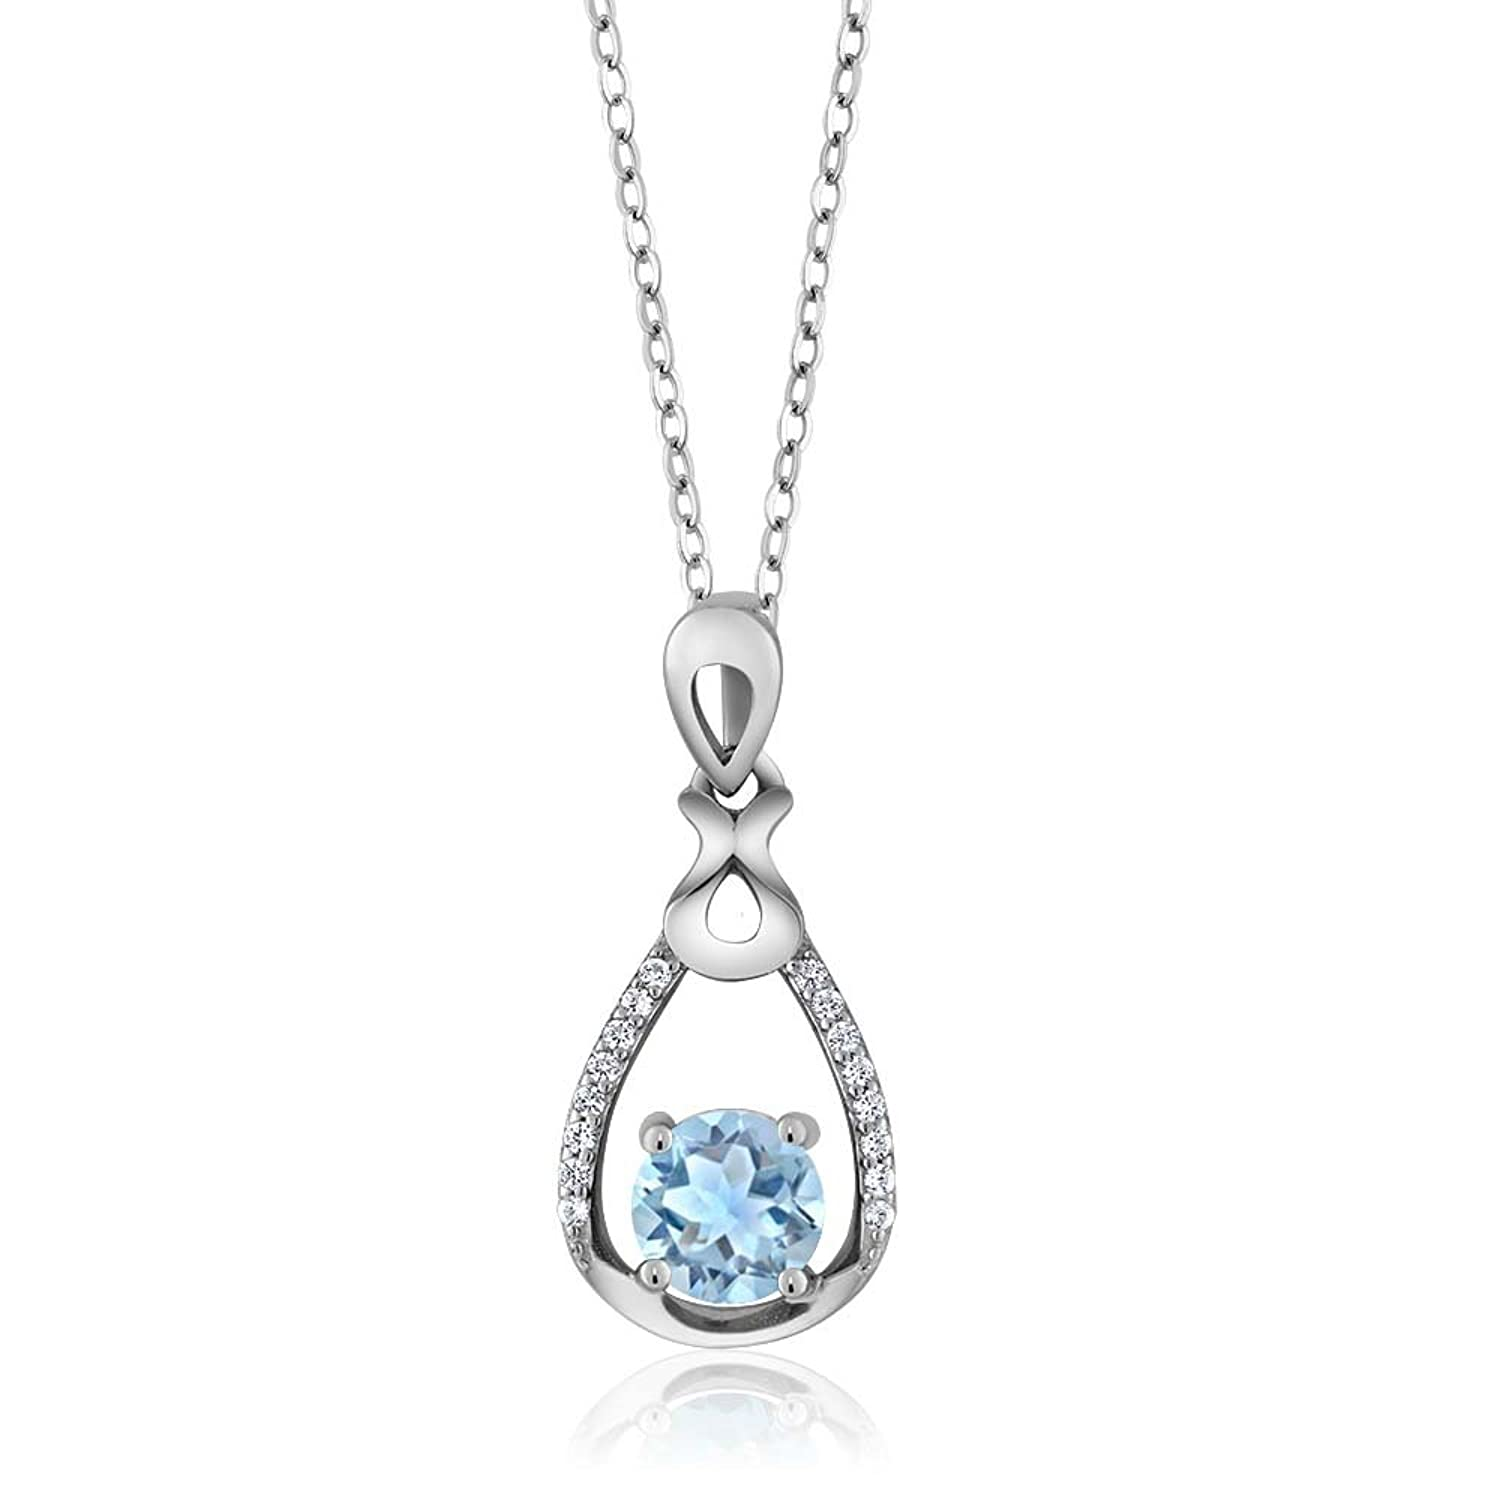 necklace cut de pear beers shaped pendant diamond white aura gold